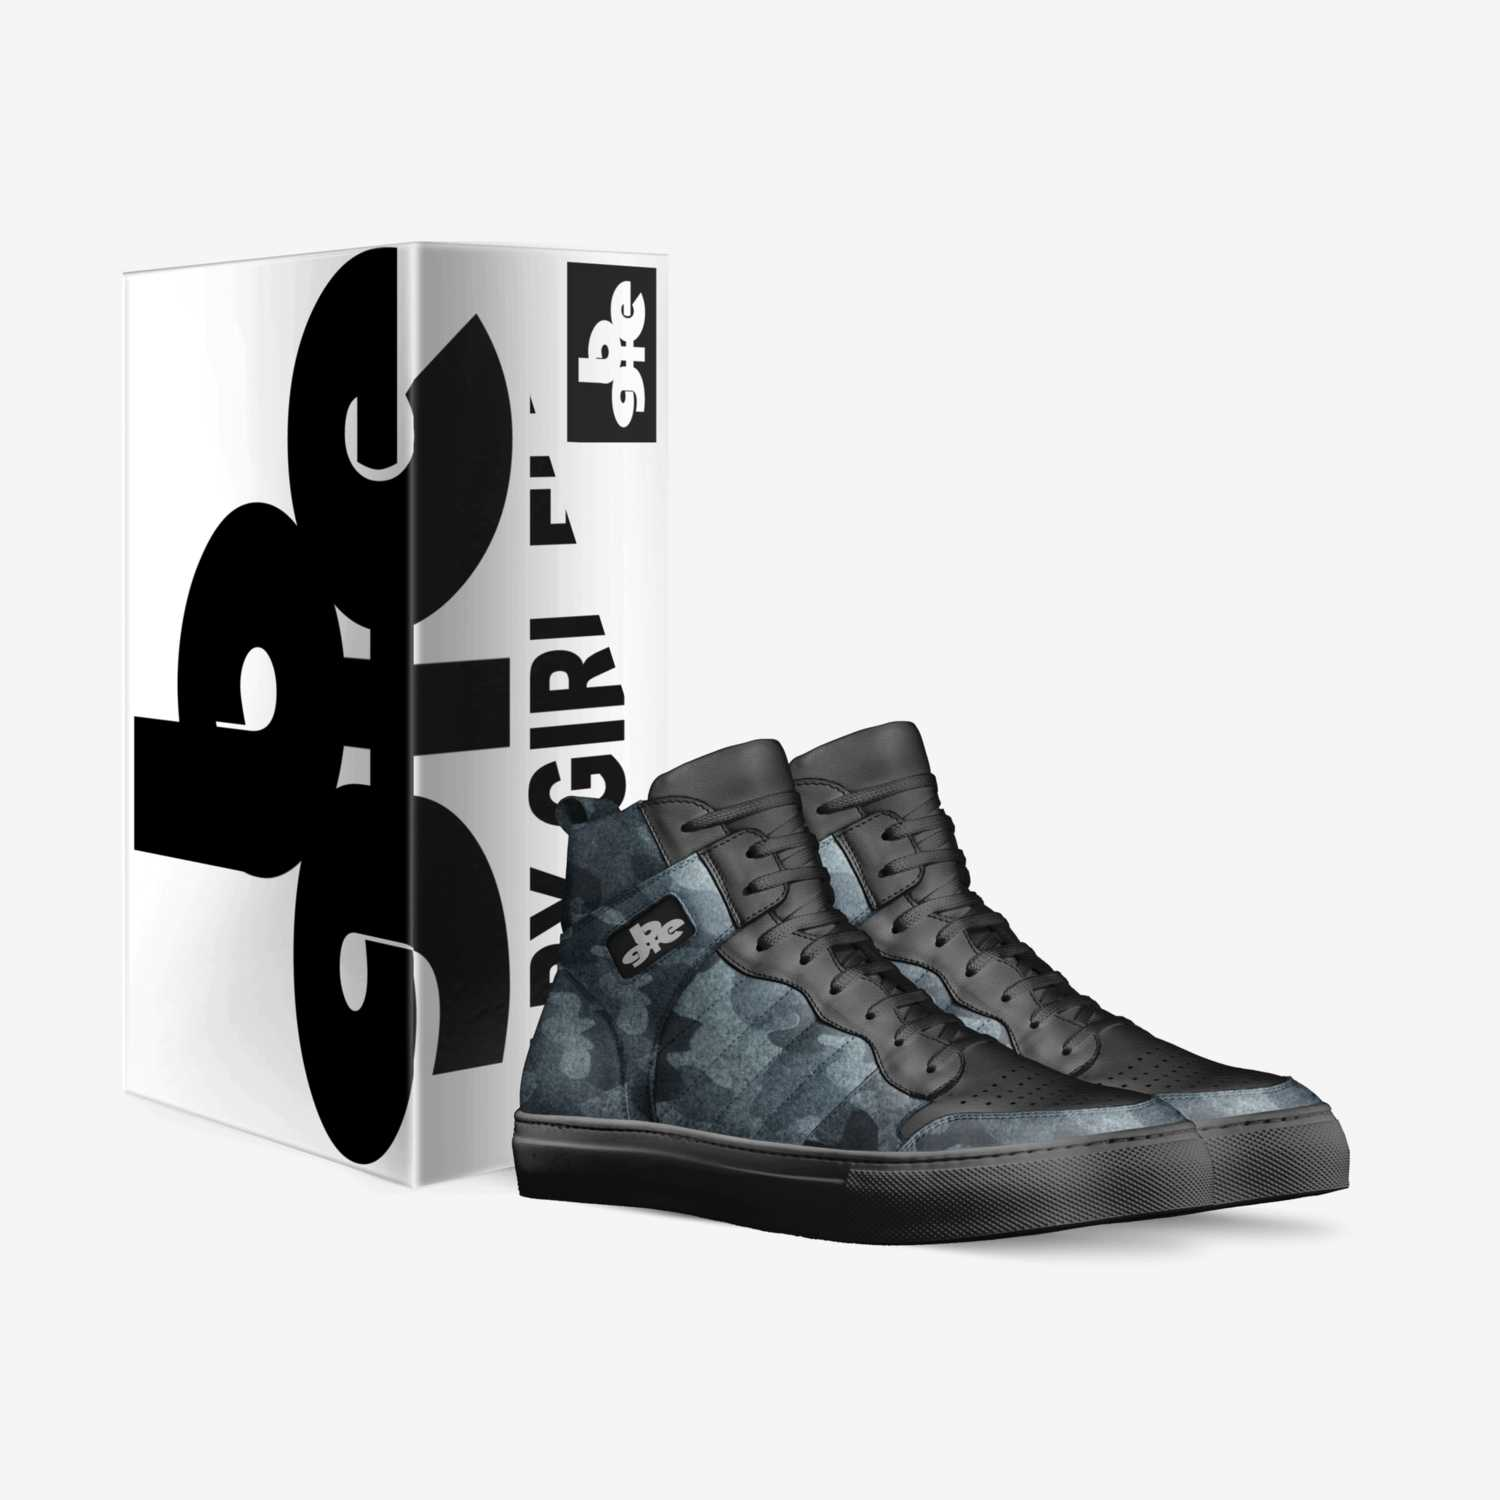 Blu Soldier SJ1 custom made in Italy shoes by Baby-girl Elite | Box view